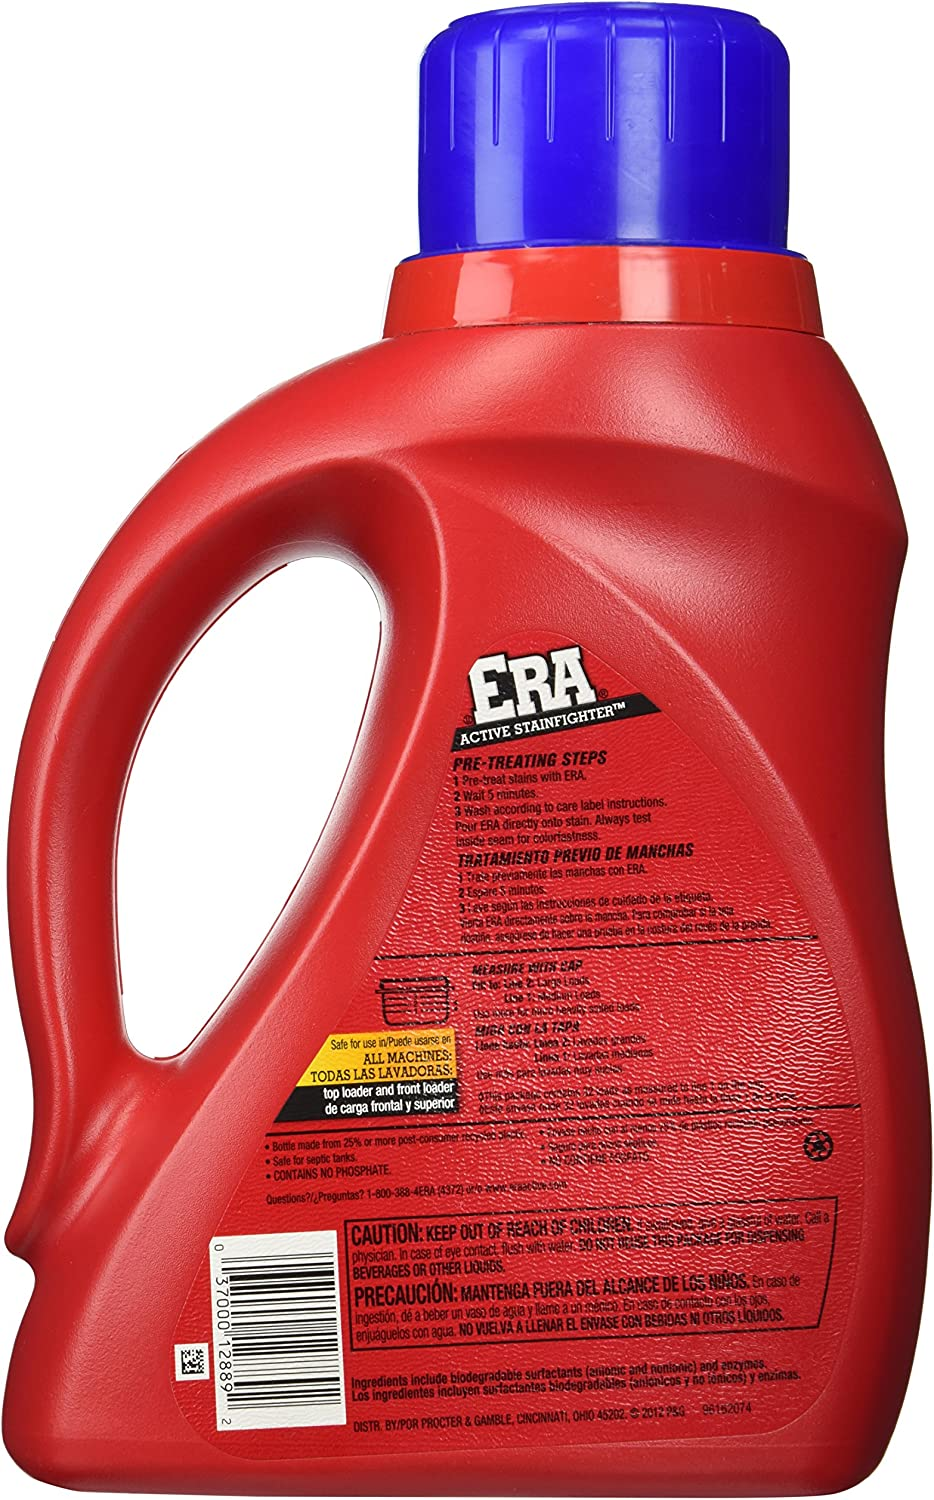 Era Regular Liquid Laundry Detergent, 50 Ounce by Era: Amazon.es ...